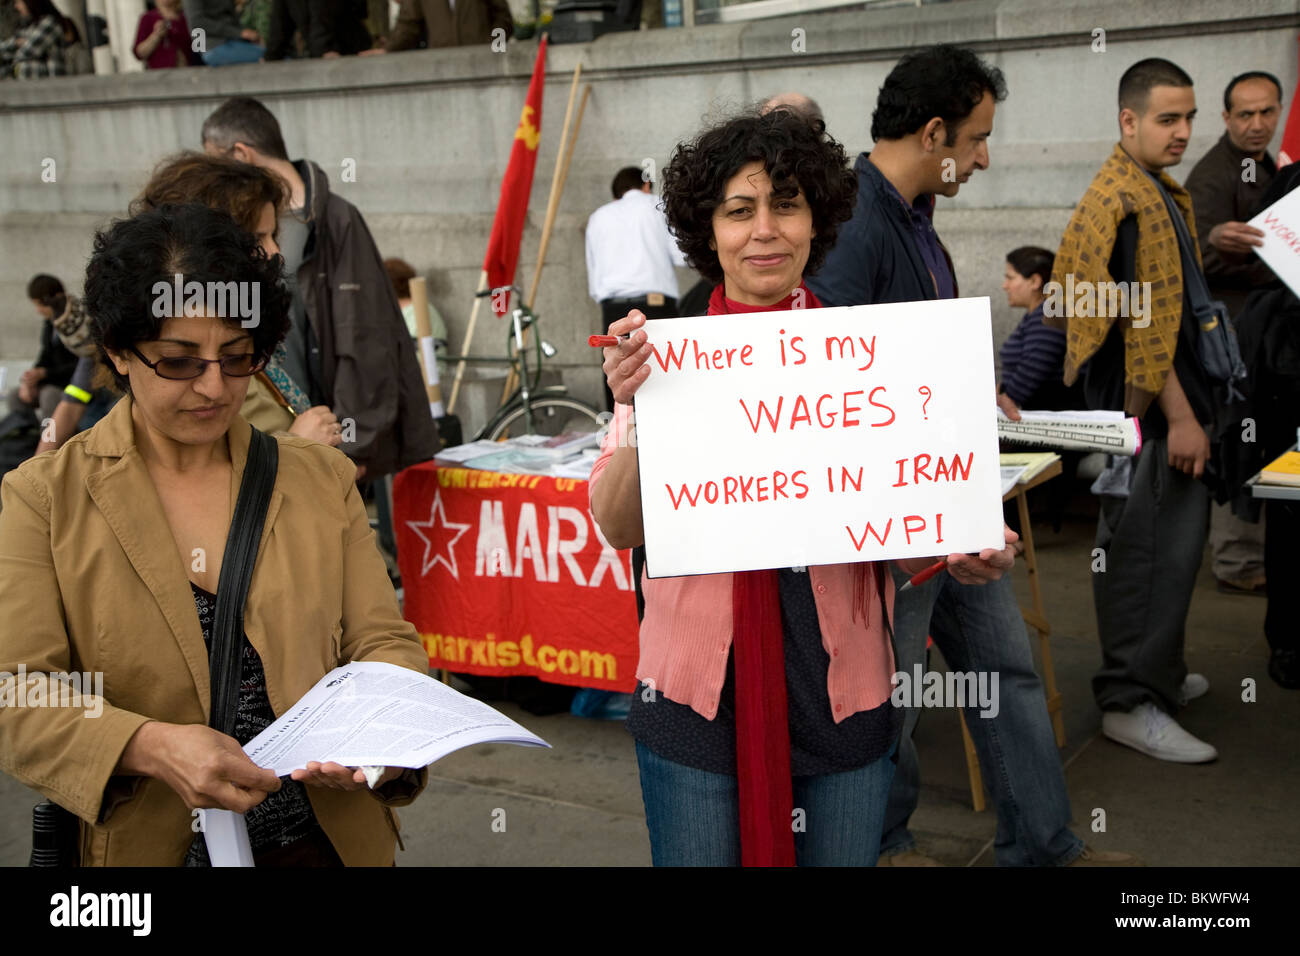 May Day march and rally at Trafalgar Square, May 1st, 2010 Woman protesting about wages in Iran - Stock Image